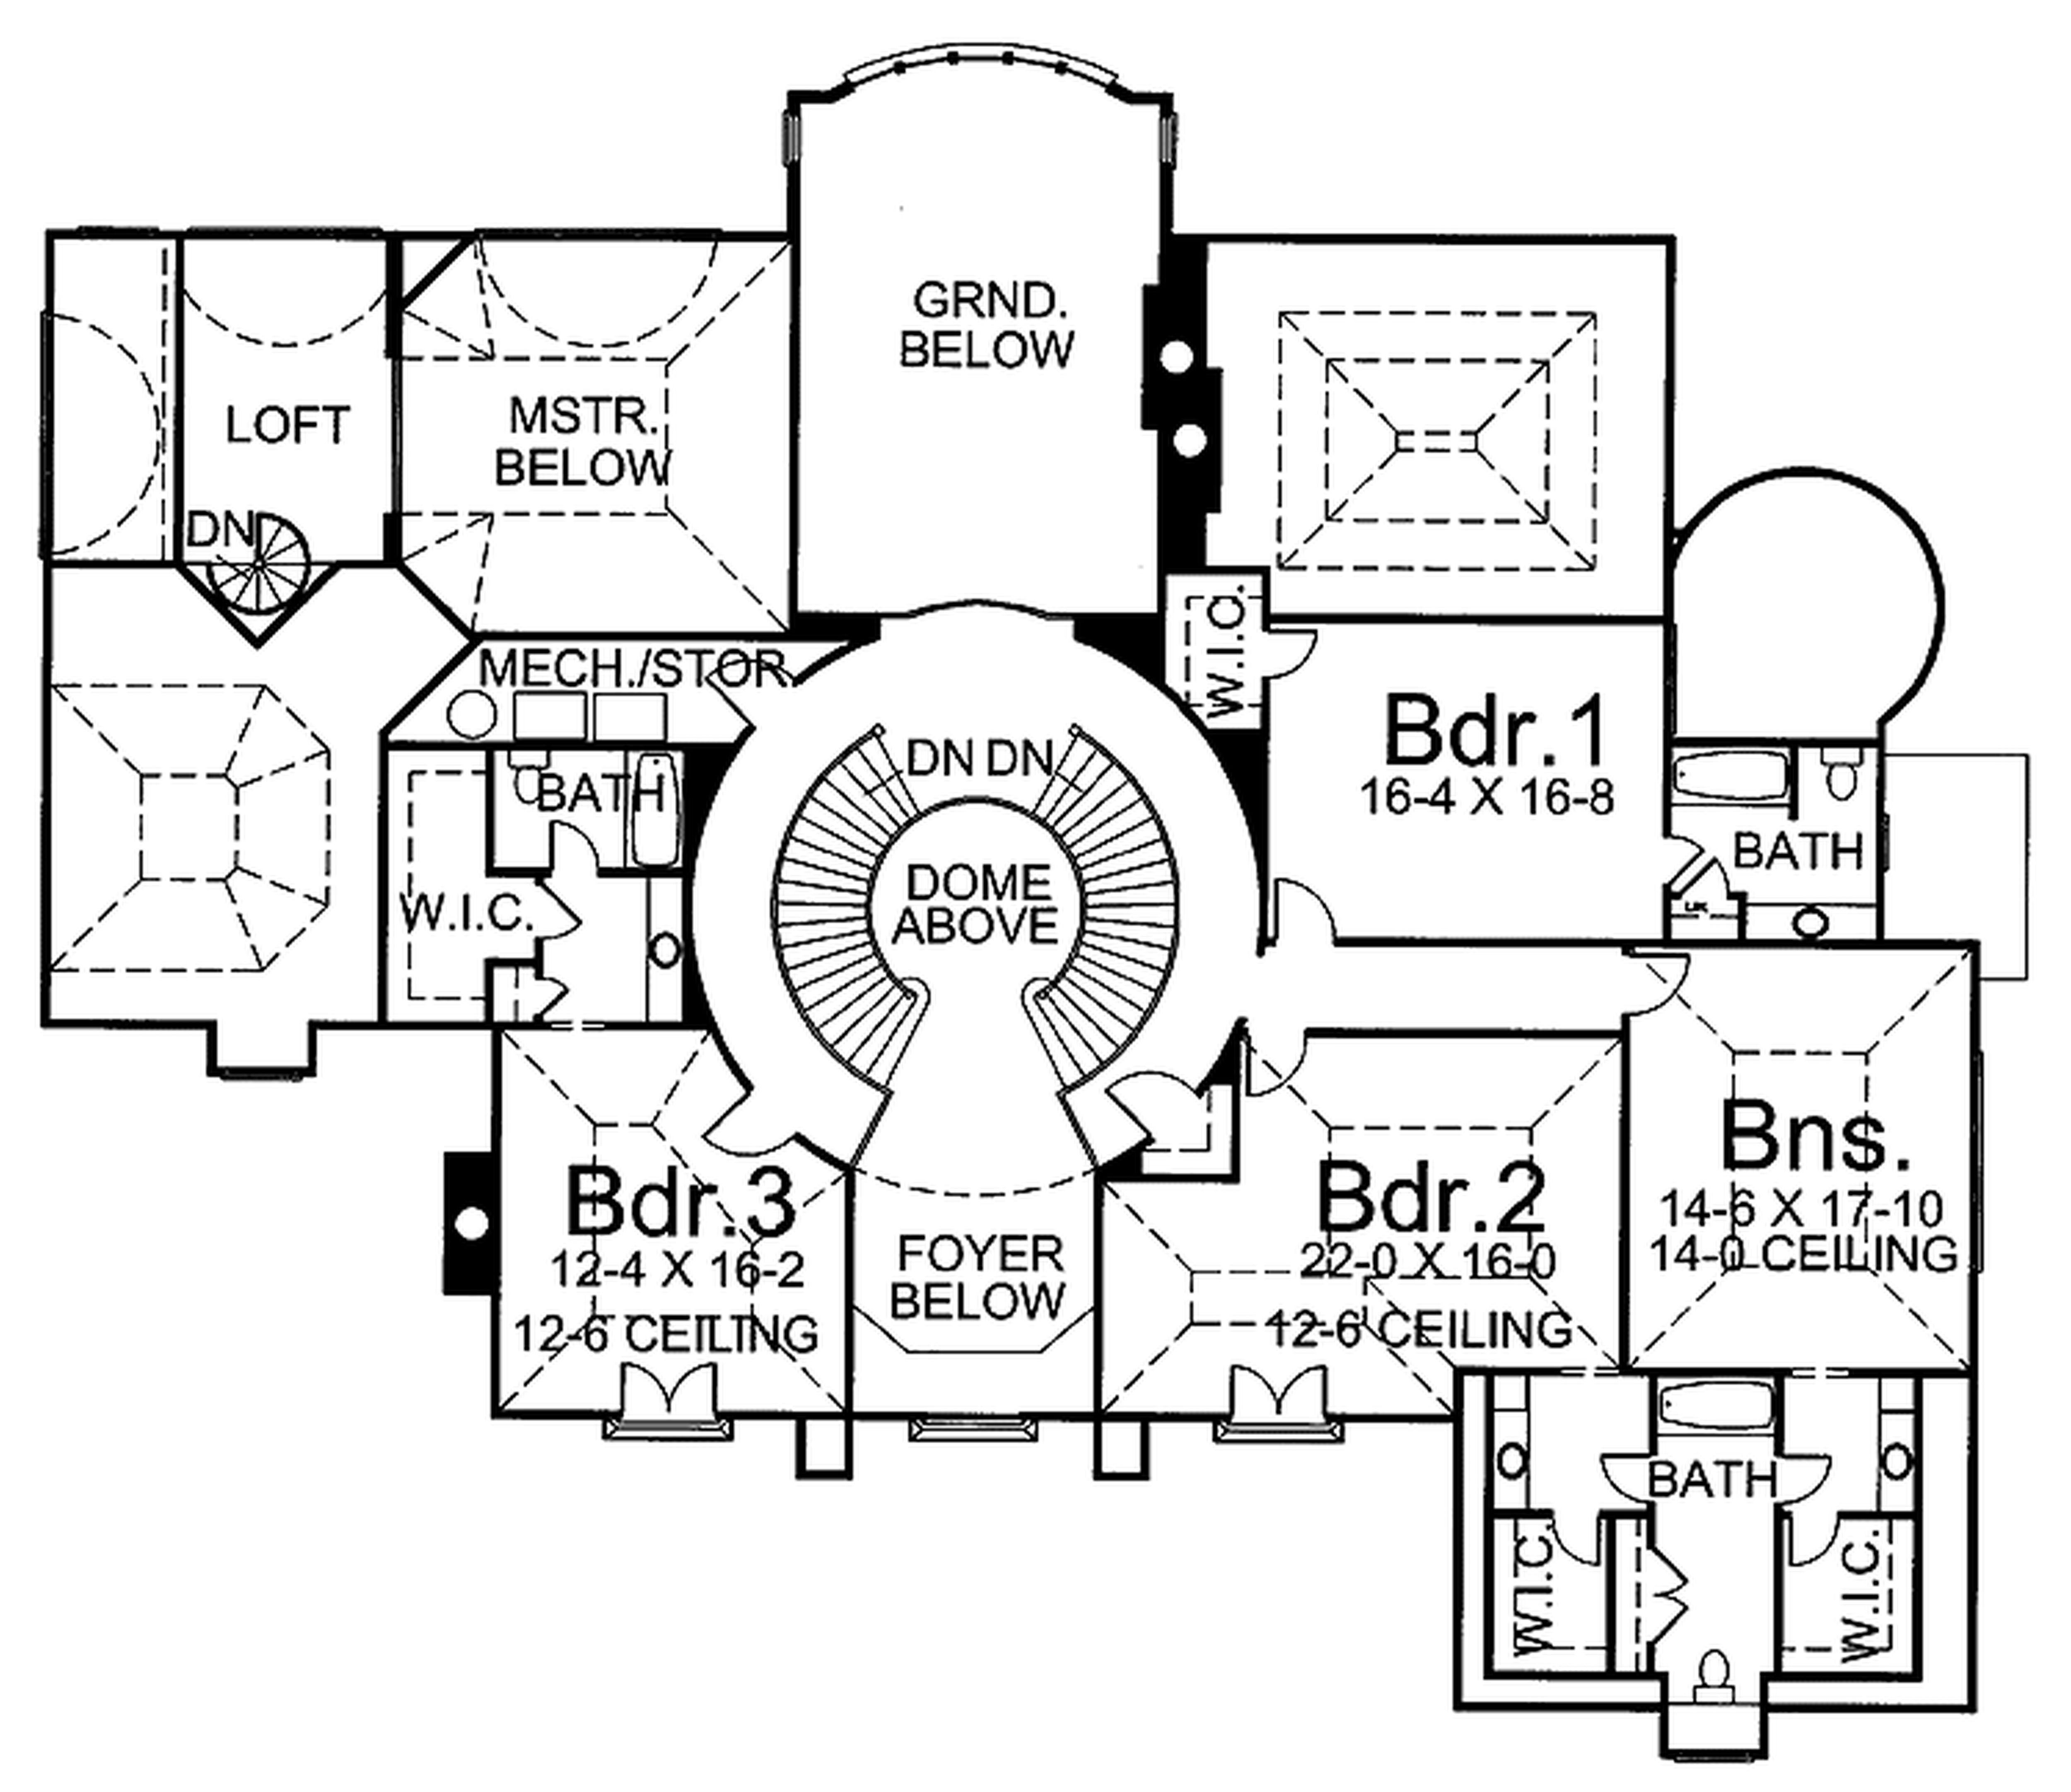 Furniture design drawing at getdrawings free for personal use 5000x4327 interior design plan drawing floor plans ideas houseplans excerpt malvernweather Image collections